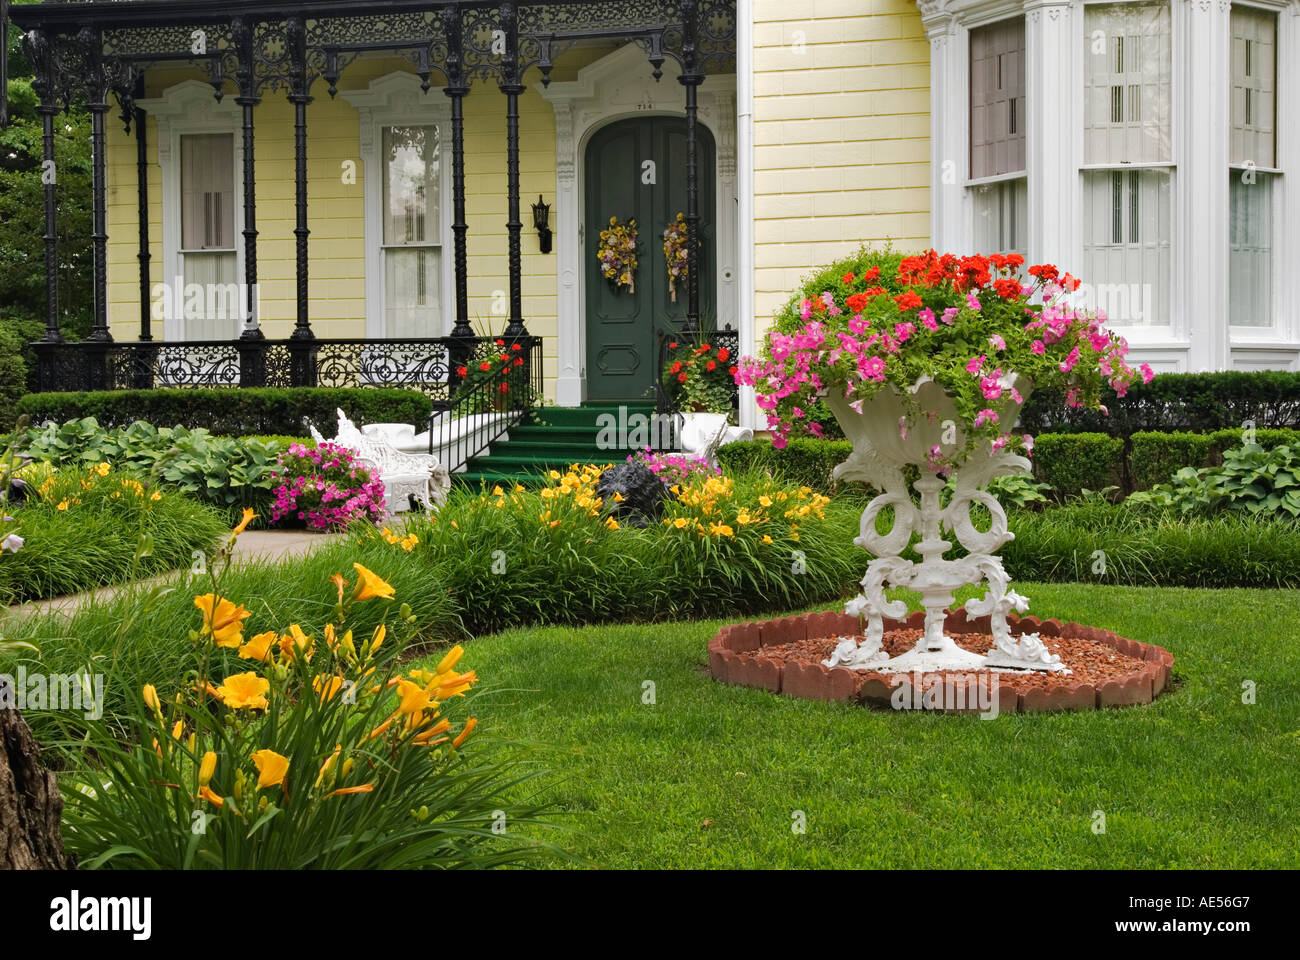 Flower Garden In Front Yard Of Home On Mansion Row New Albany Indiana